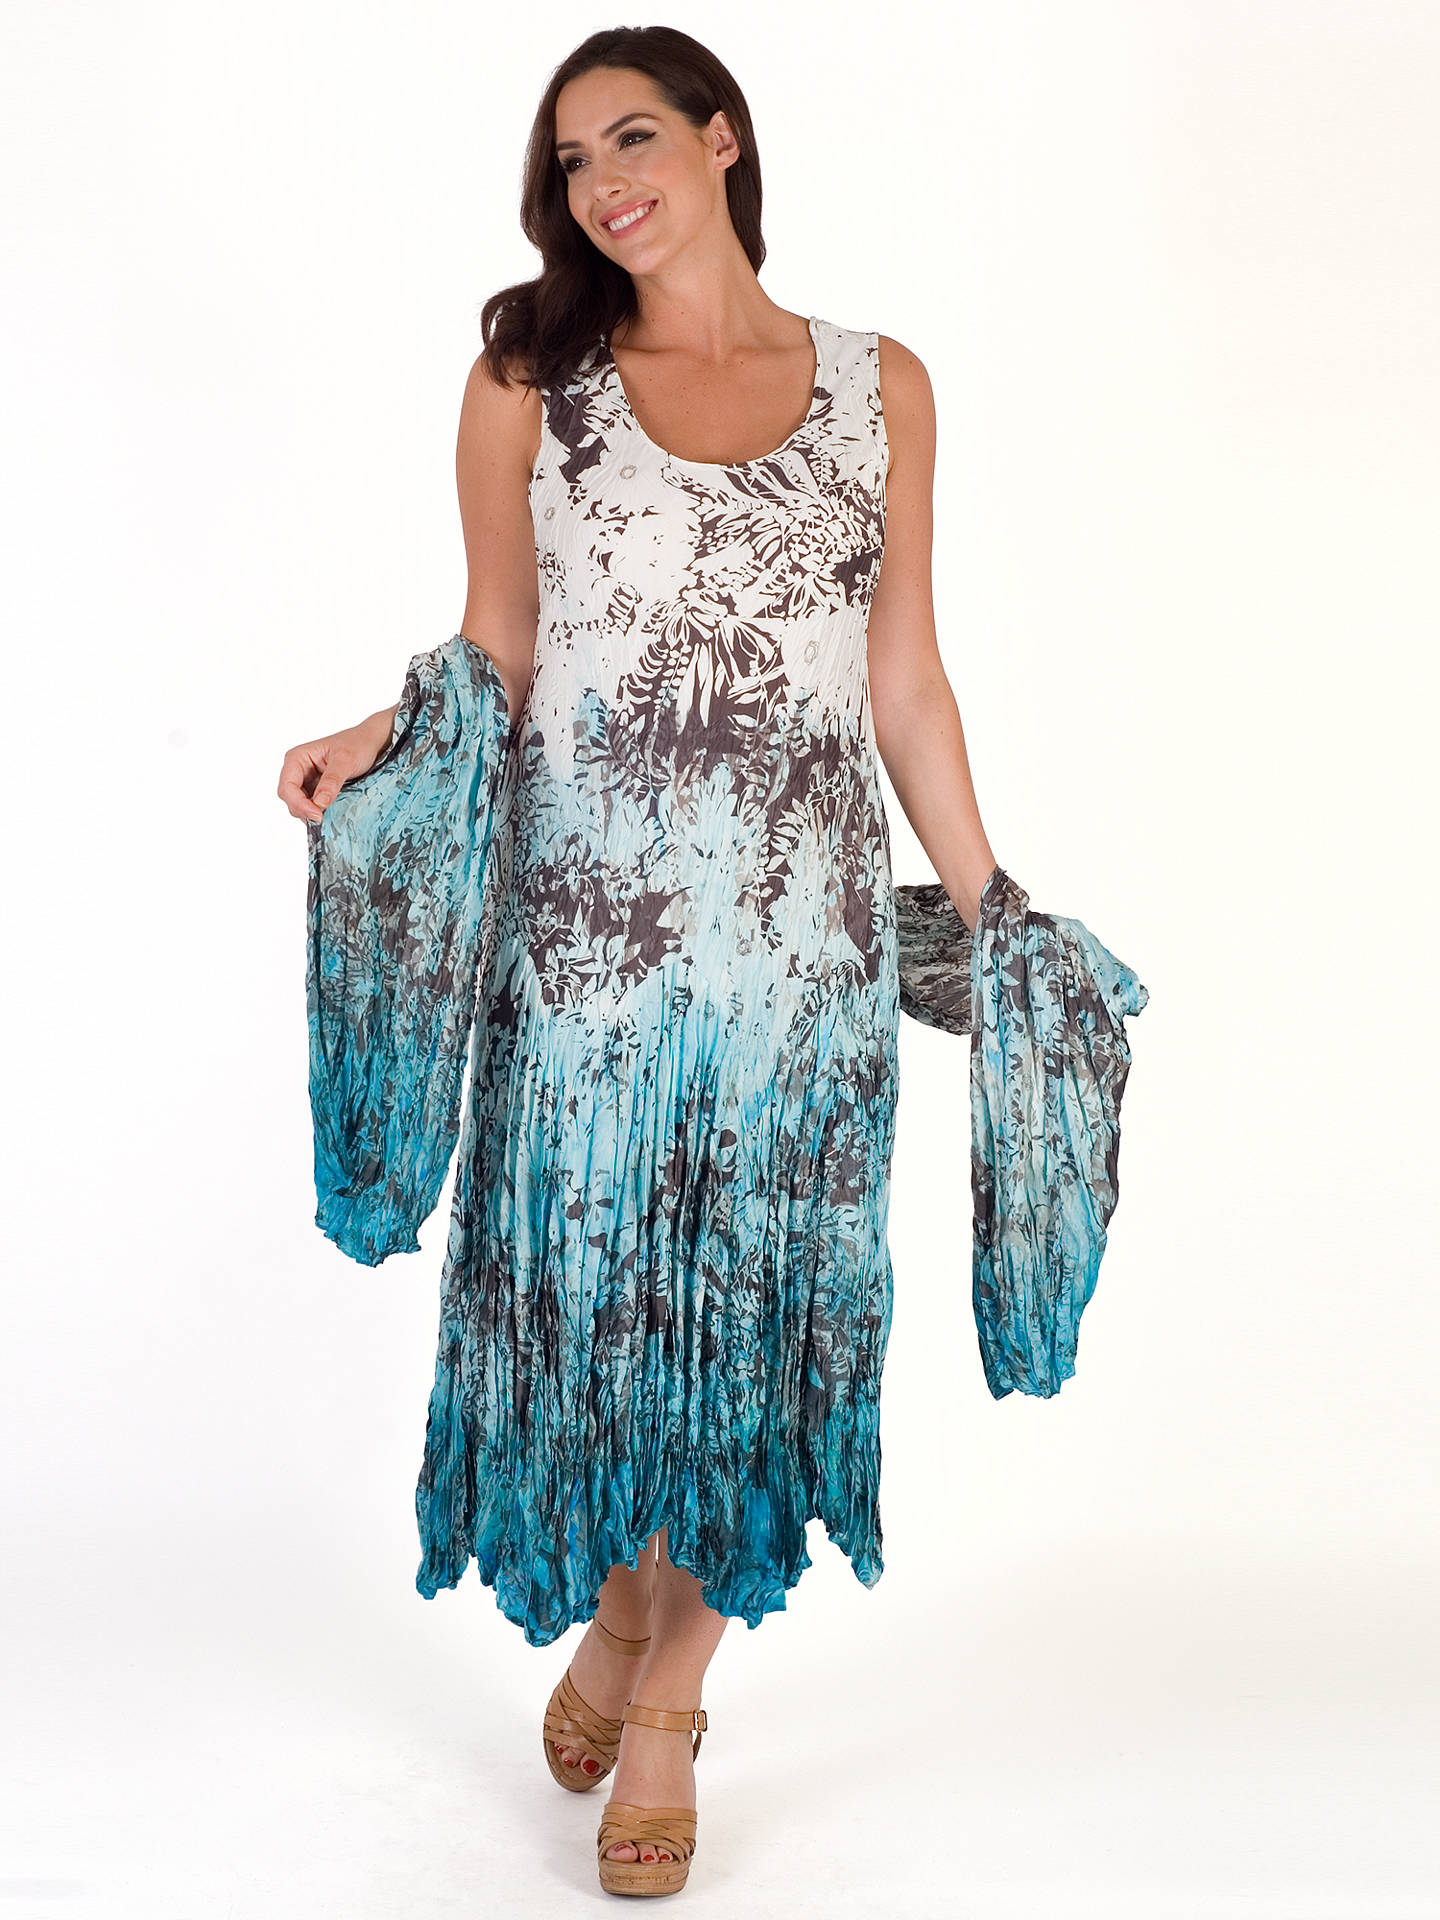 BuyChesca Printed Ombre Crush Pleat Dress, Ivory/Turquoise, 12-14 Online at johnlewis.com